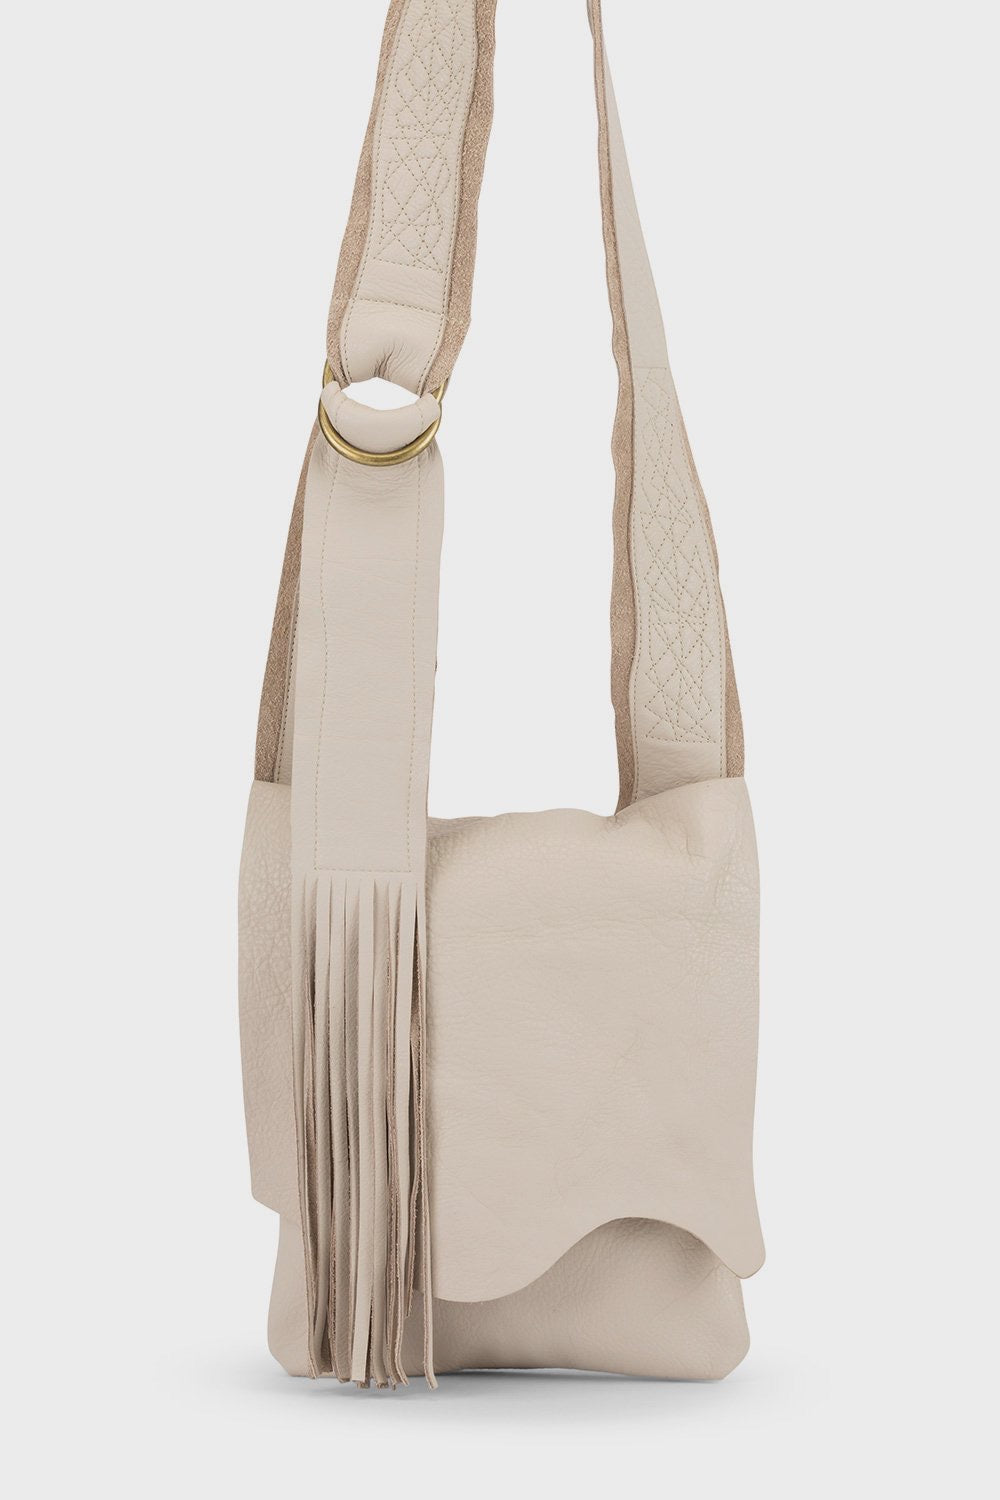 Molly G Wanderer Bag in Bone